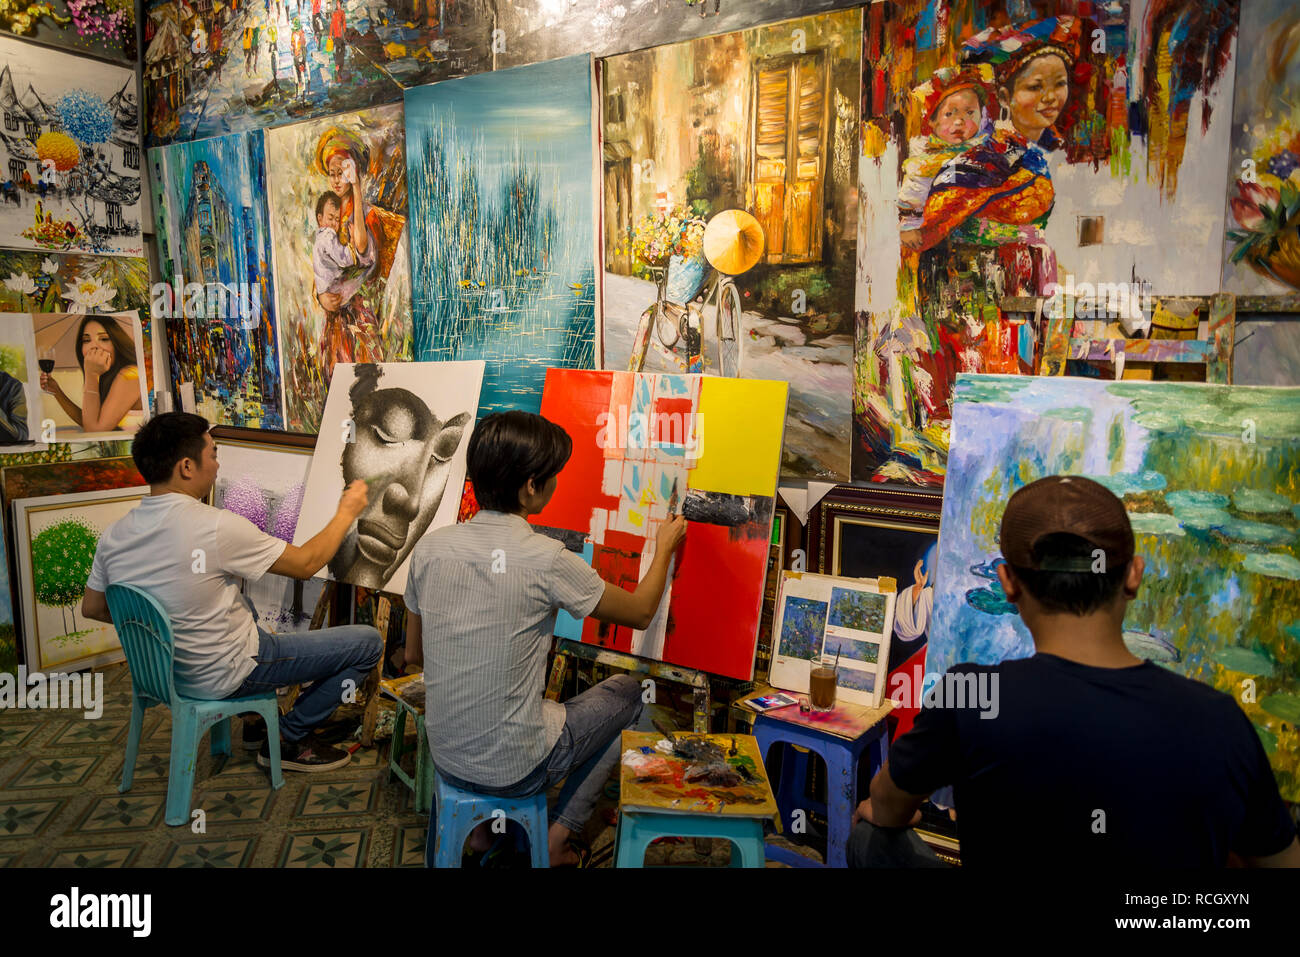 Artists in a commercial art gallery painting copies of well known European artworks, Hanoi, Vietnam - Stock Image